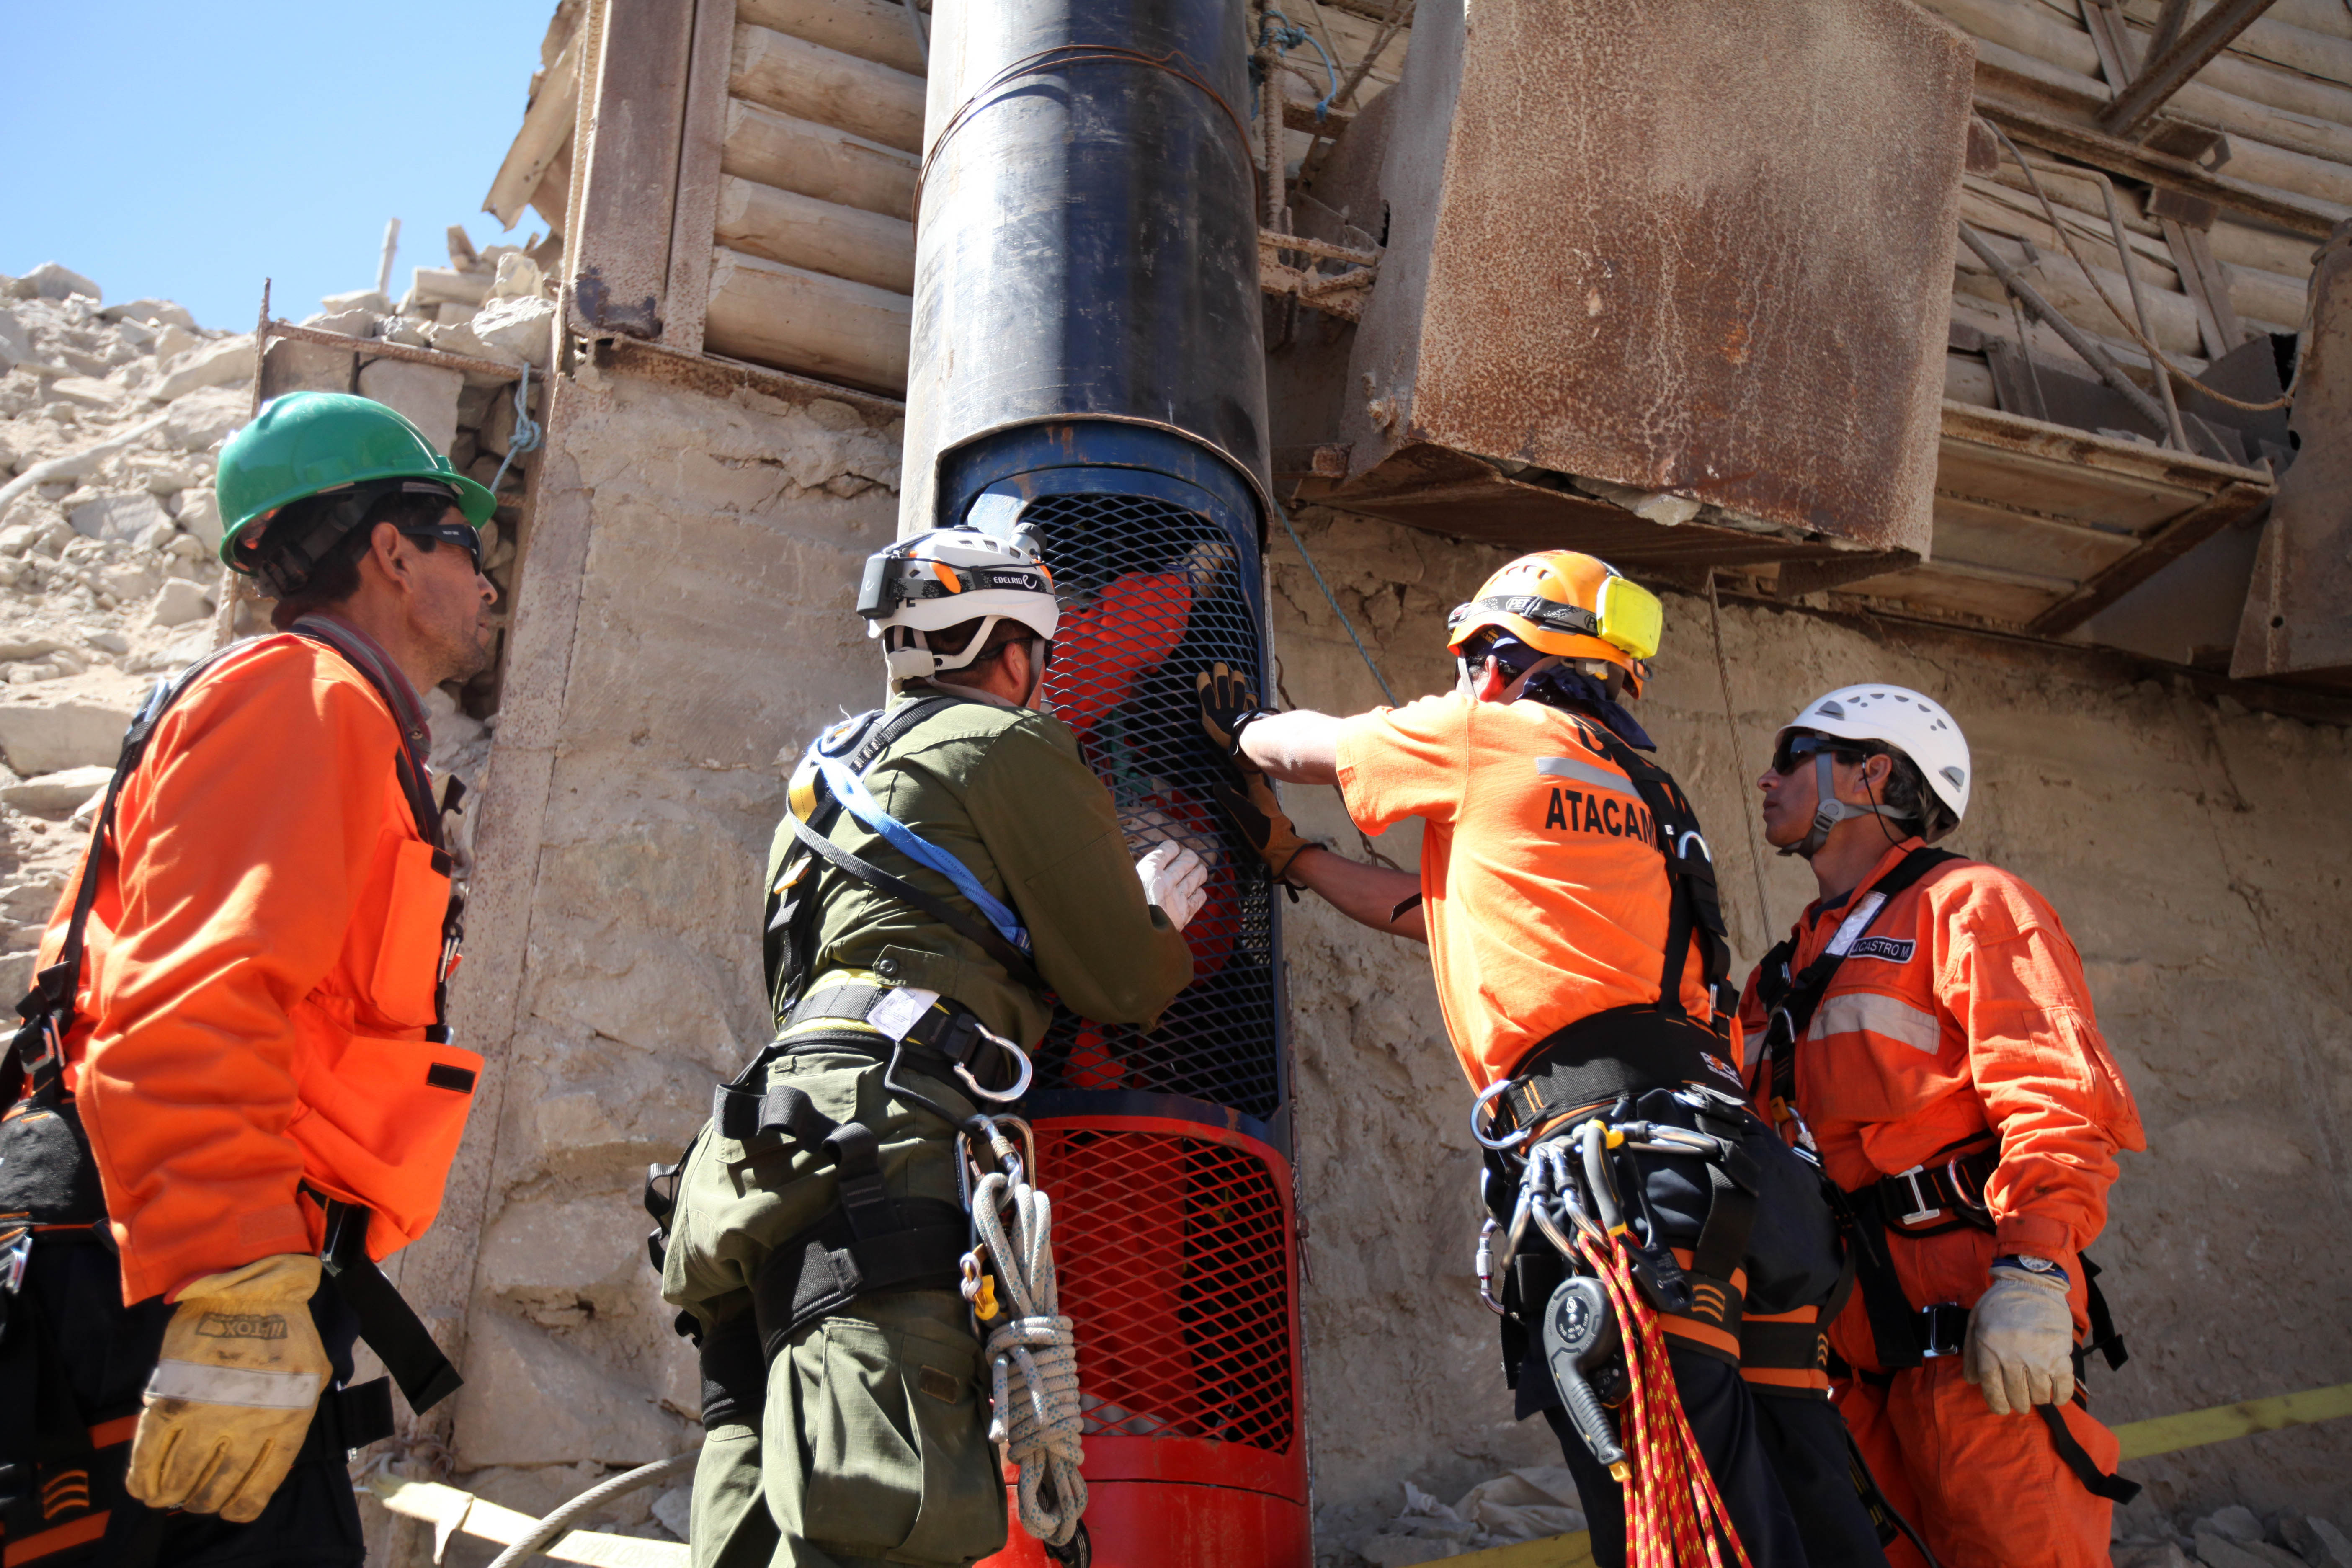 chilean miners rescue essay The men trapped in the chilean mine shaft was communication release chilean miners essay the people thought this was unjust and failed to realize what rescue.